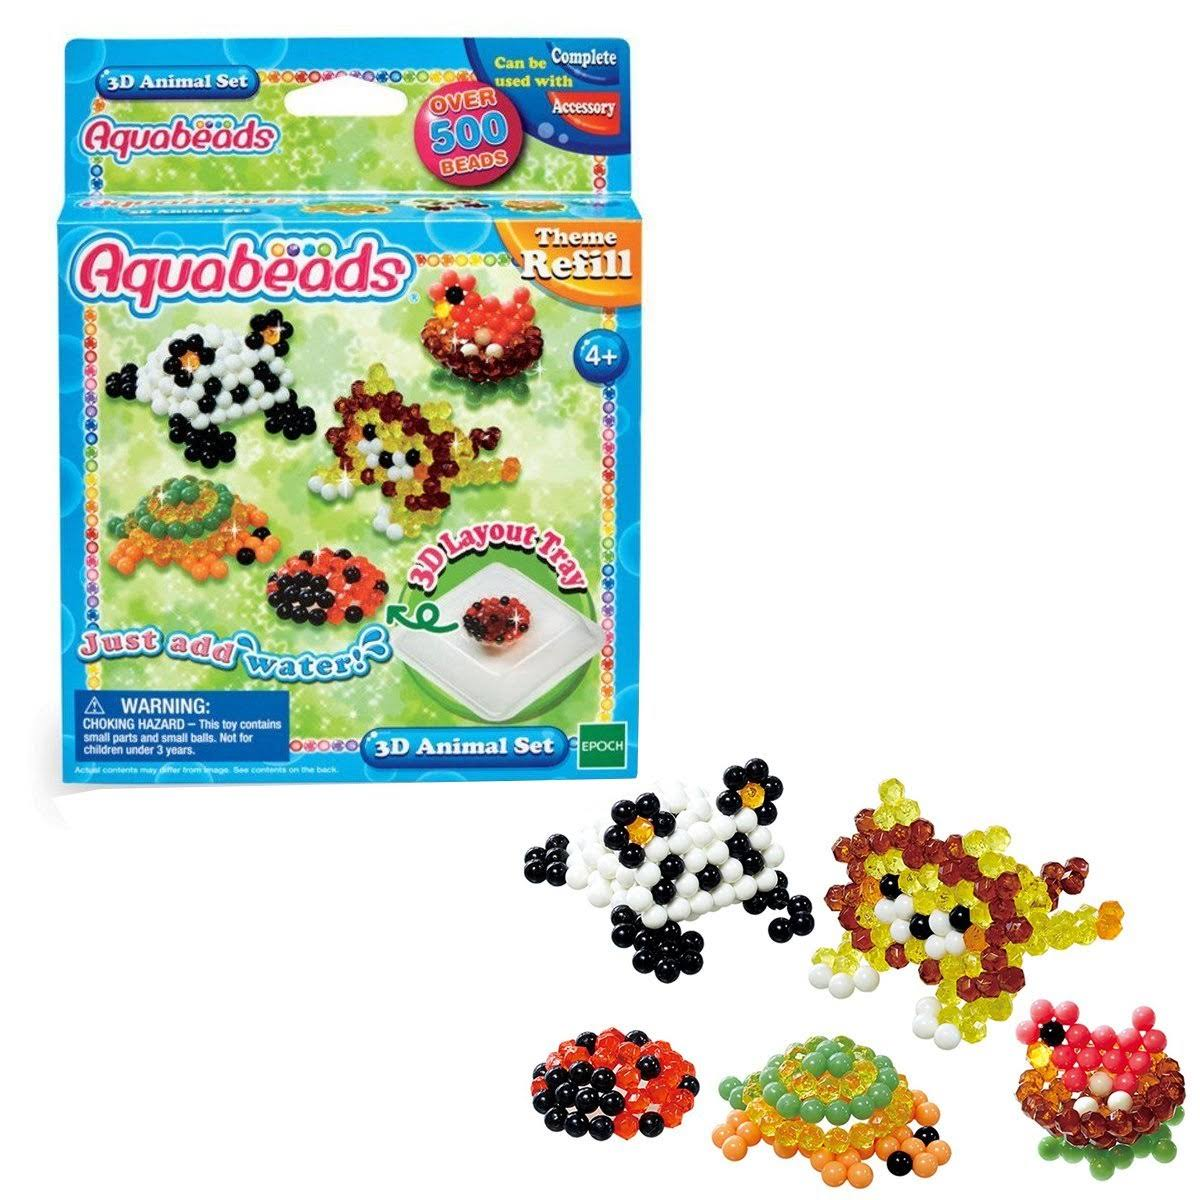 Aquabeads 3D Animal Set